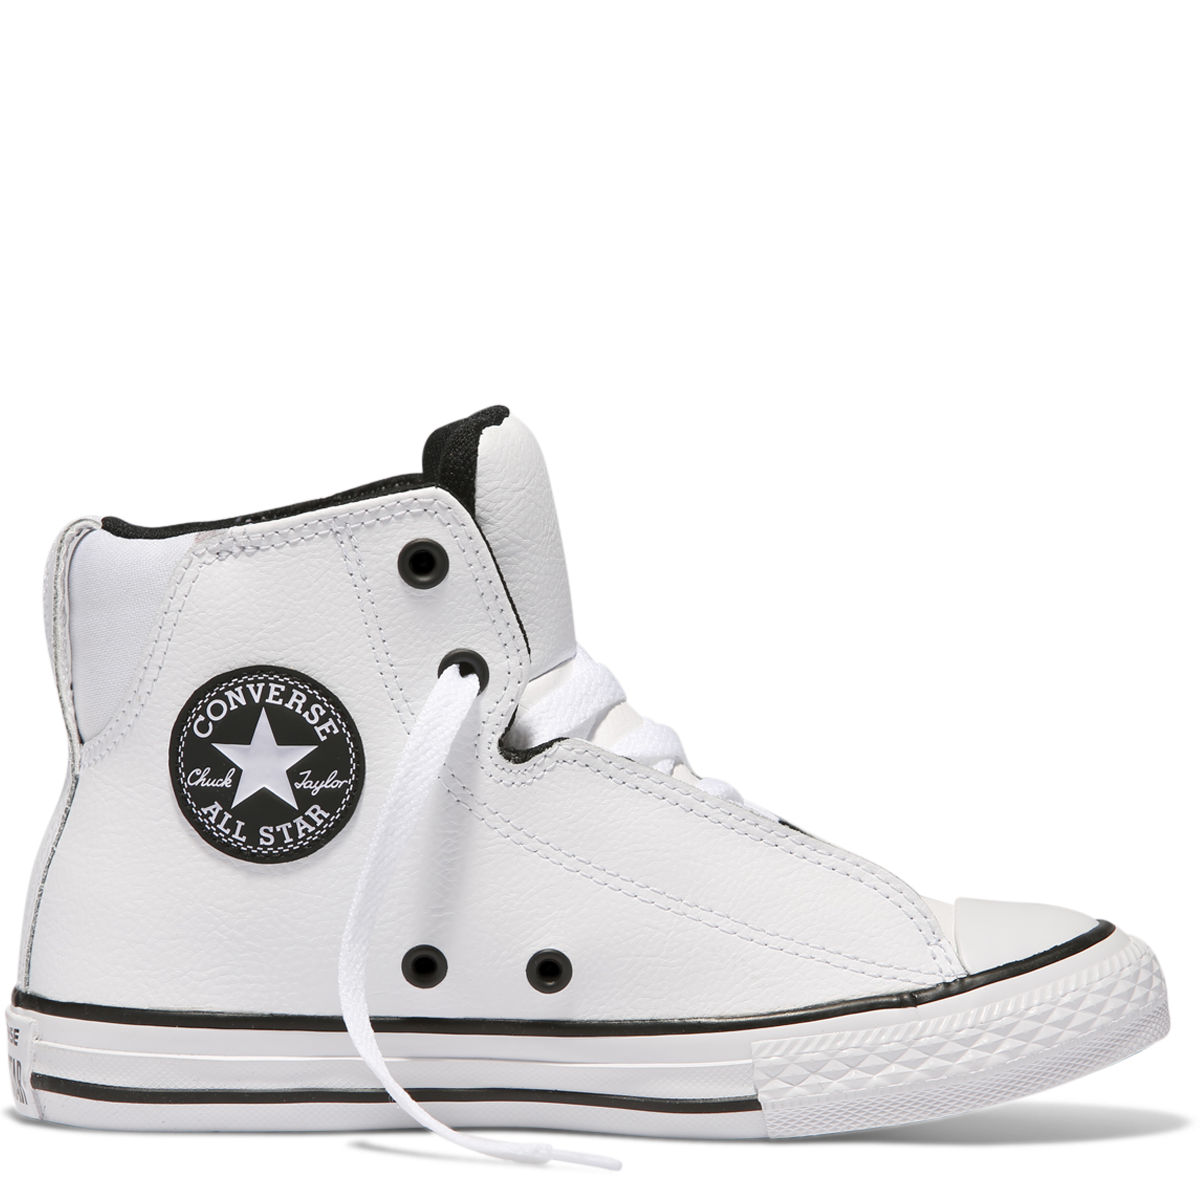 c9493bf010e5 Chuck Taylor Youth All Star Legit Leather High Top White 655997C Famous  Rock Shop 517 Hunter ...